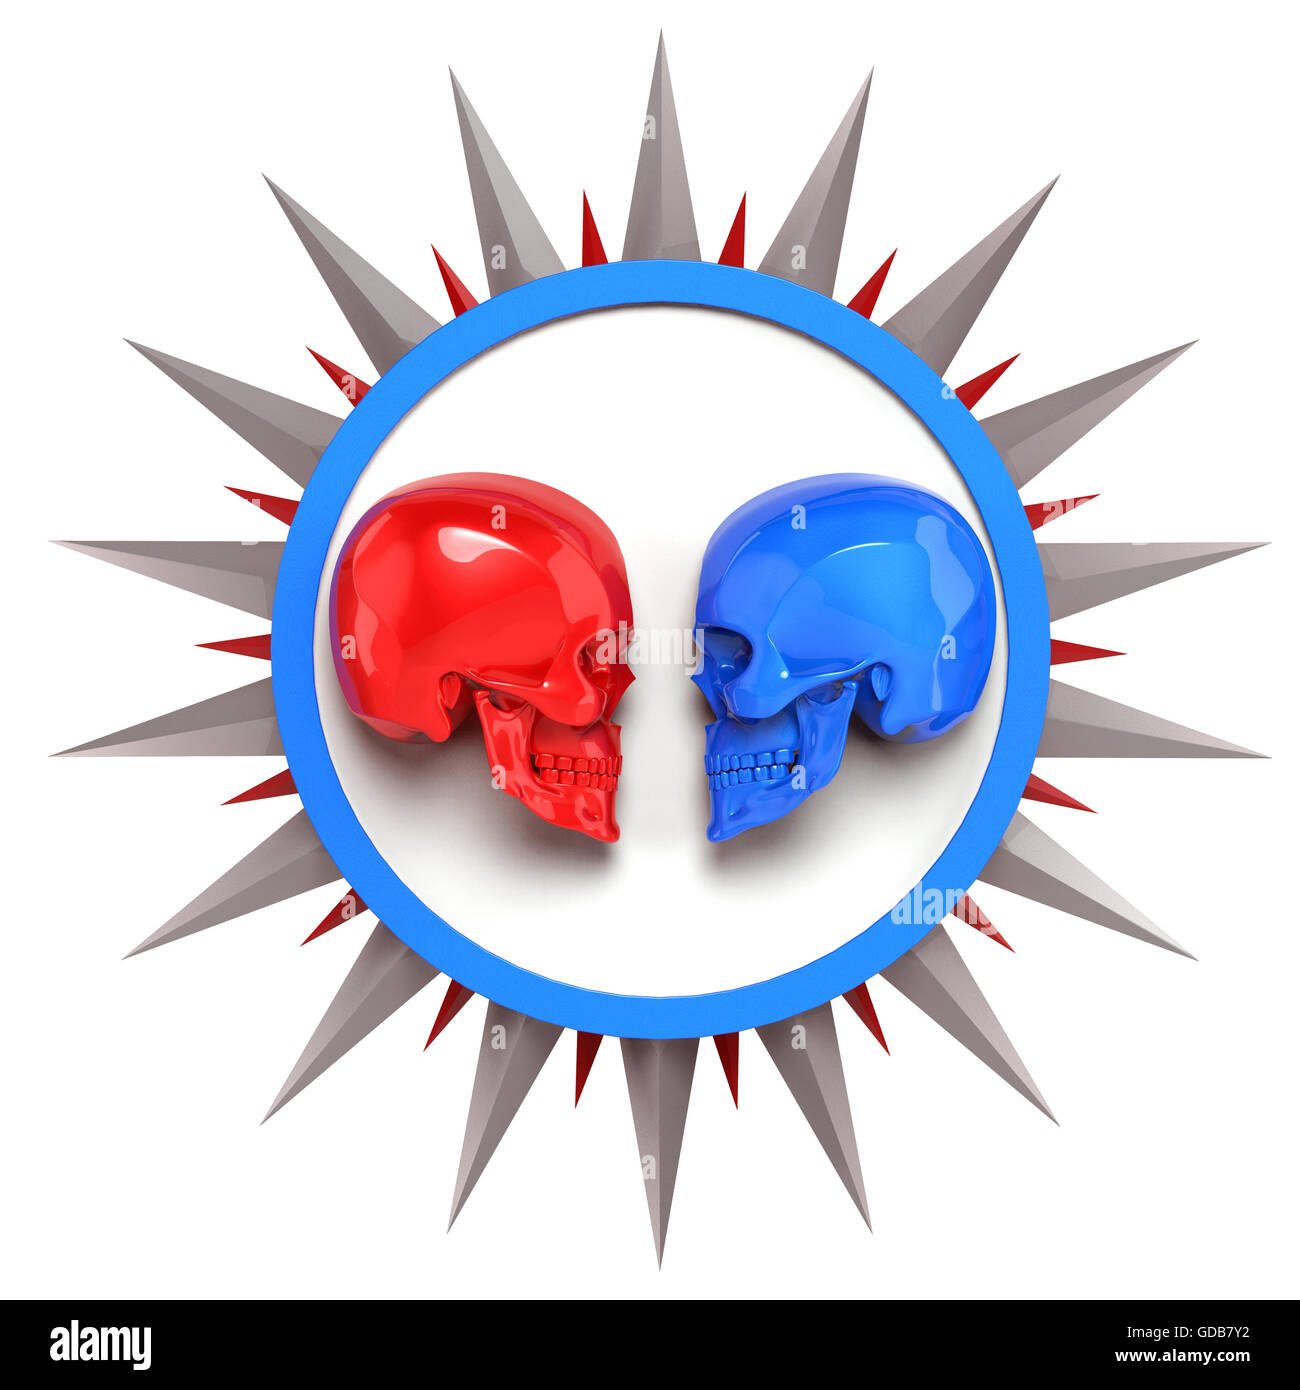 red vs blue metallic painted shiny skulls on white plate with shine spike star around, render. isolated   background, - Stock Image